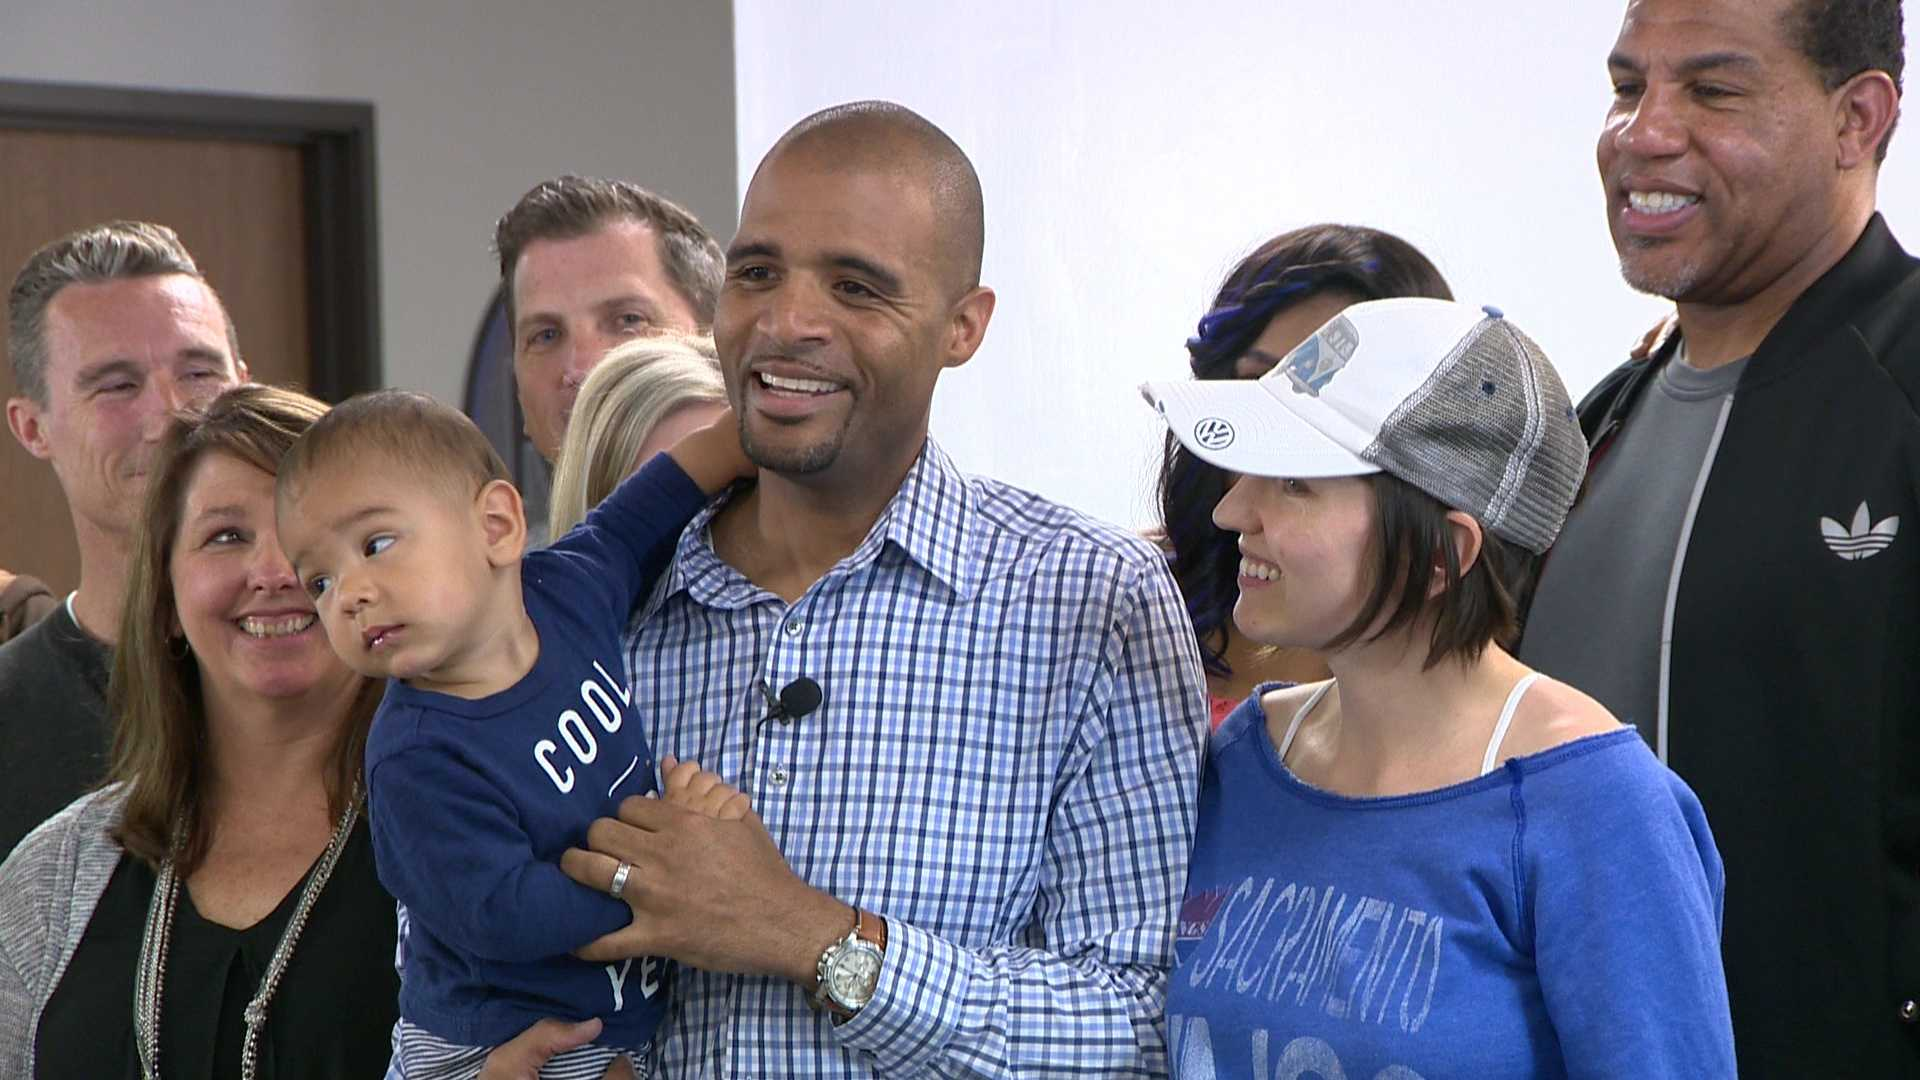 Pastor Joseph Sissac and his wife announced Tuesday, April 12, 2016, that they will donate a car Sissac won by making a half-court shot to a raffle fundraiser.